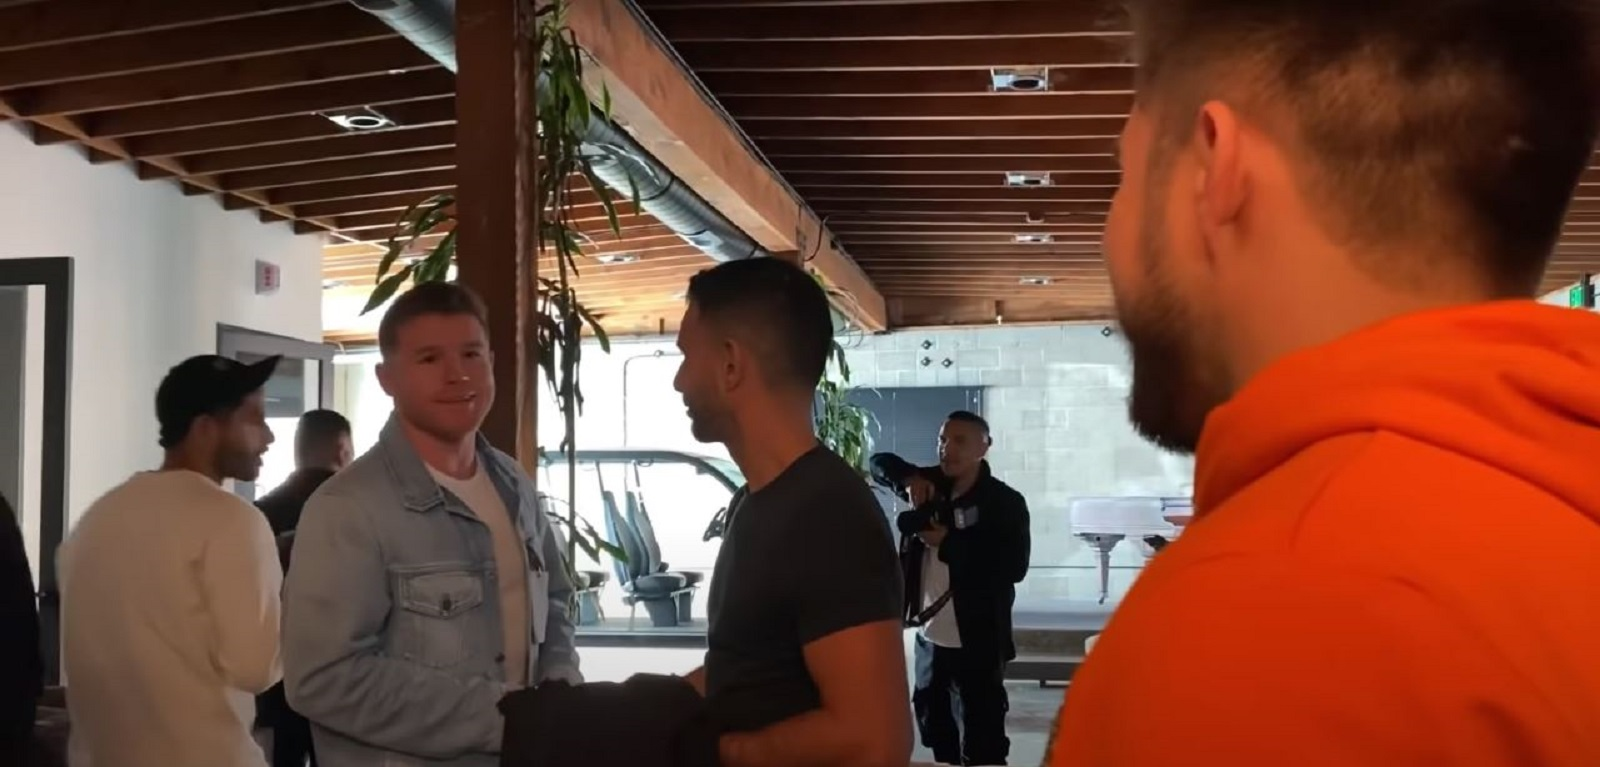 Watch Canelo Gets Into Exchange With Henry Cejudo Over Ryan Garcia